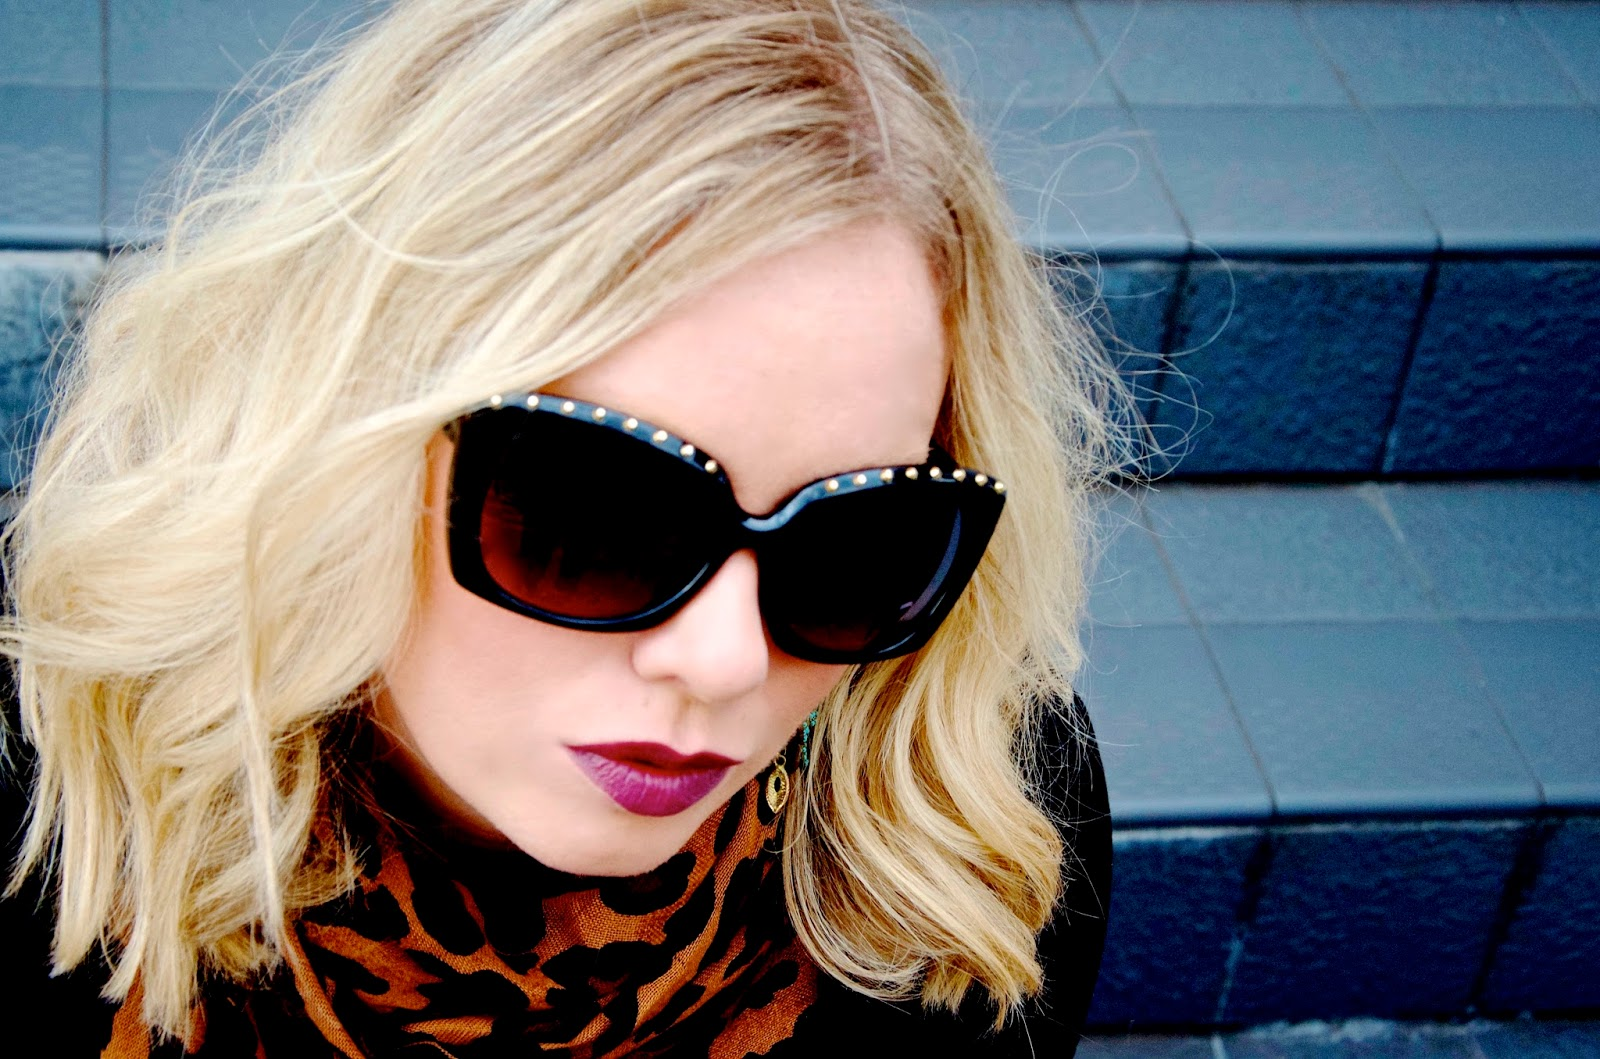 Gold studded black sunglasses, leopard print scarf, turquoise earrings and purple lipstick